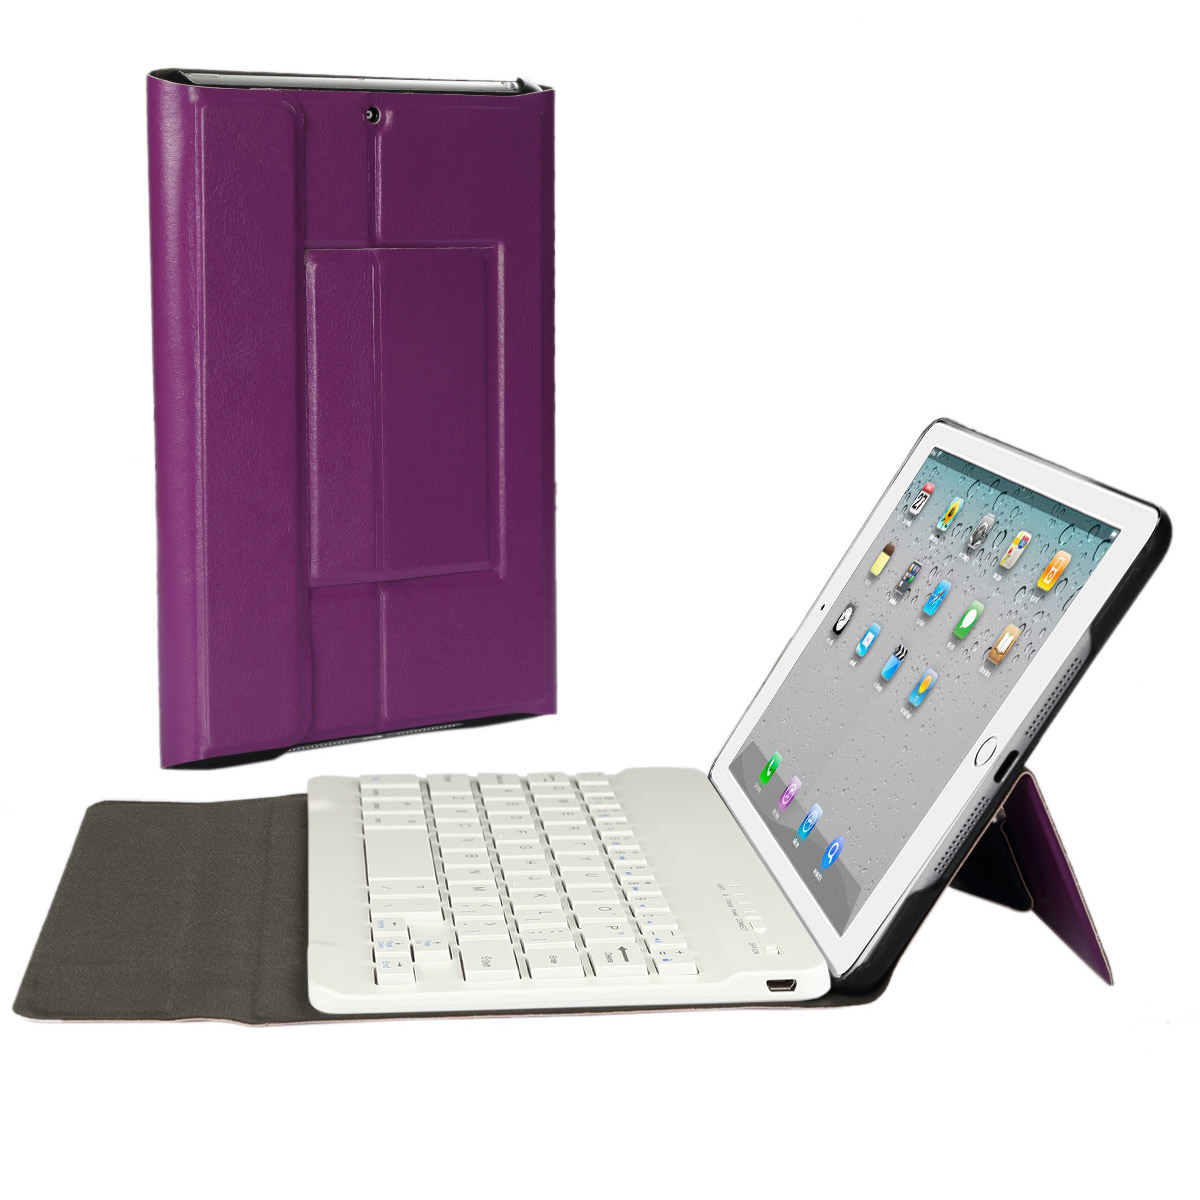 iPad mini 1/2/3 Bluetooth Keyboard Case, CoastaCloud Bluetooth Ultra Slim Removable Smart Shell Stand Cover with Magnetic Detachable Universal Wireless Keyboard for Apple iPad mini 3/2/1 (Purple)